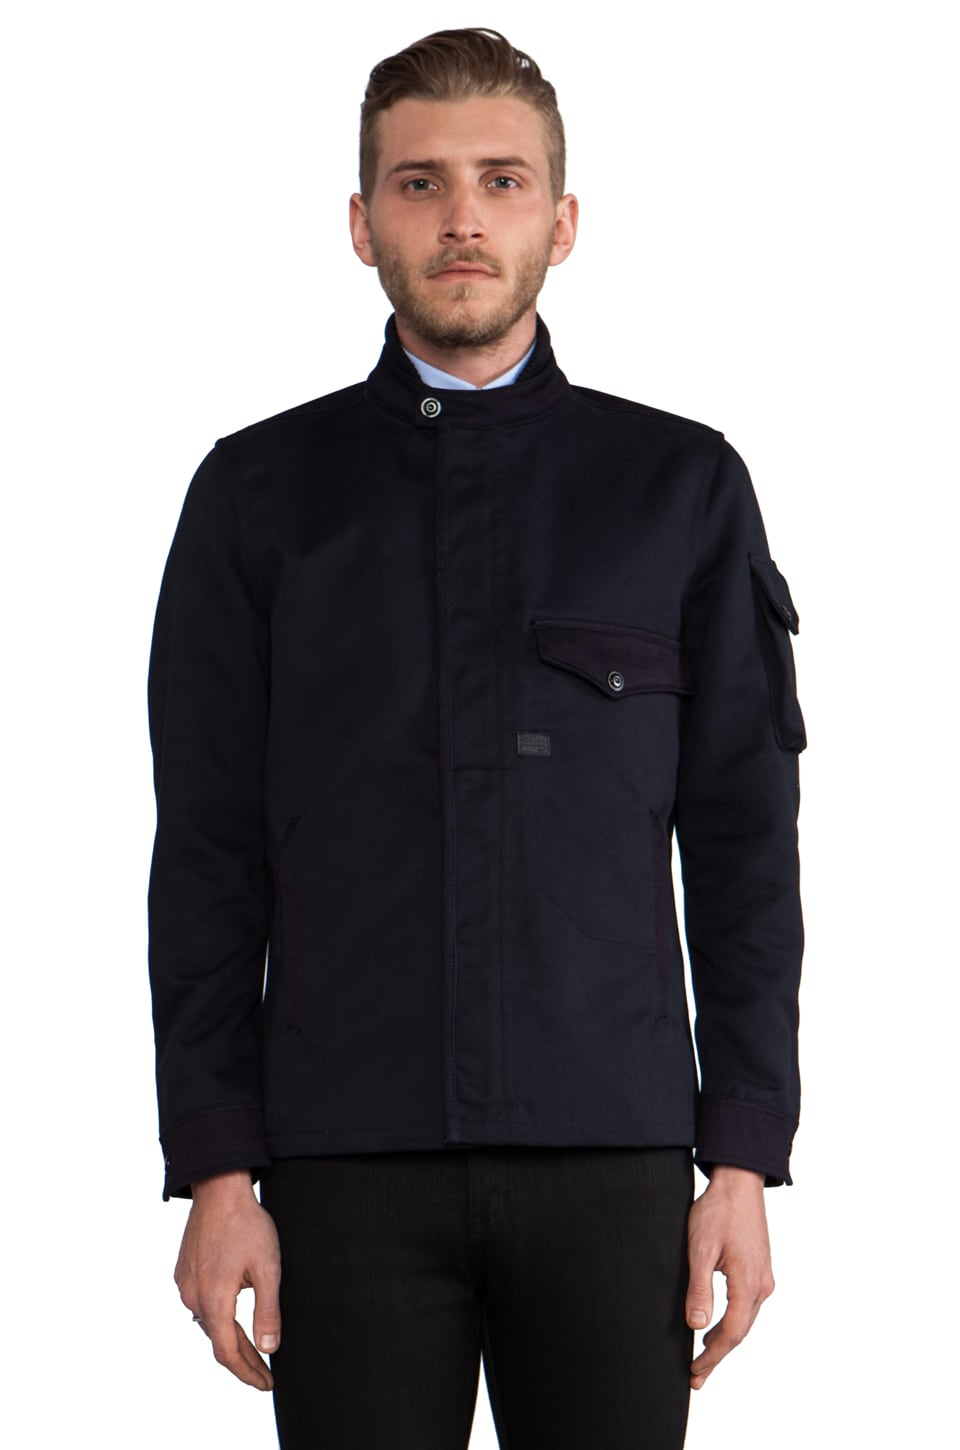 G-Star Davin Zip Overshirt in Mazarine Blue